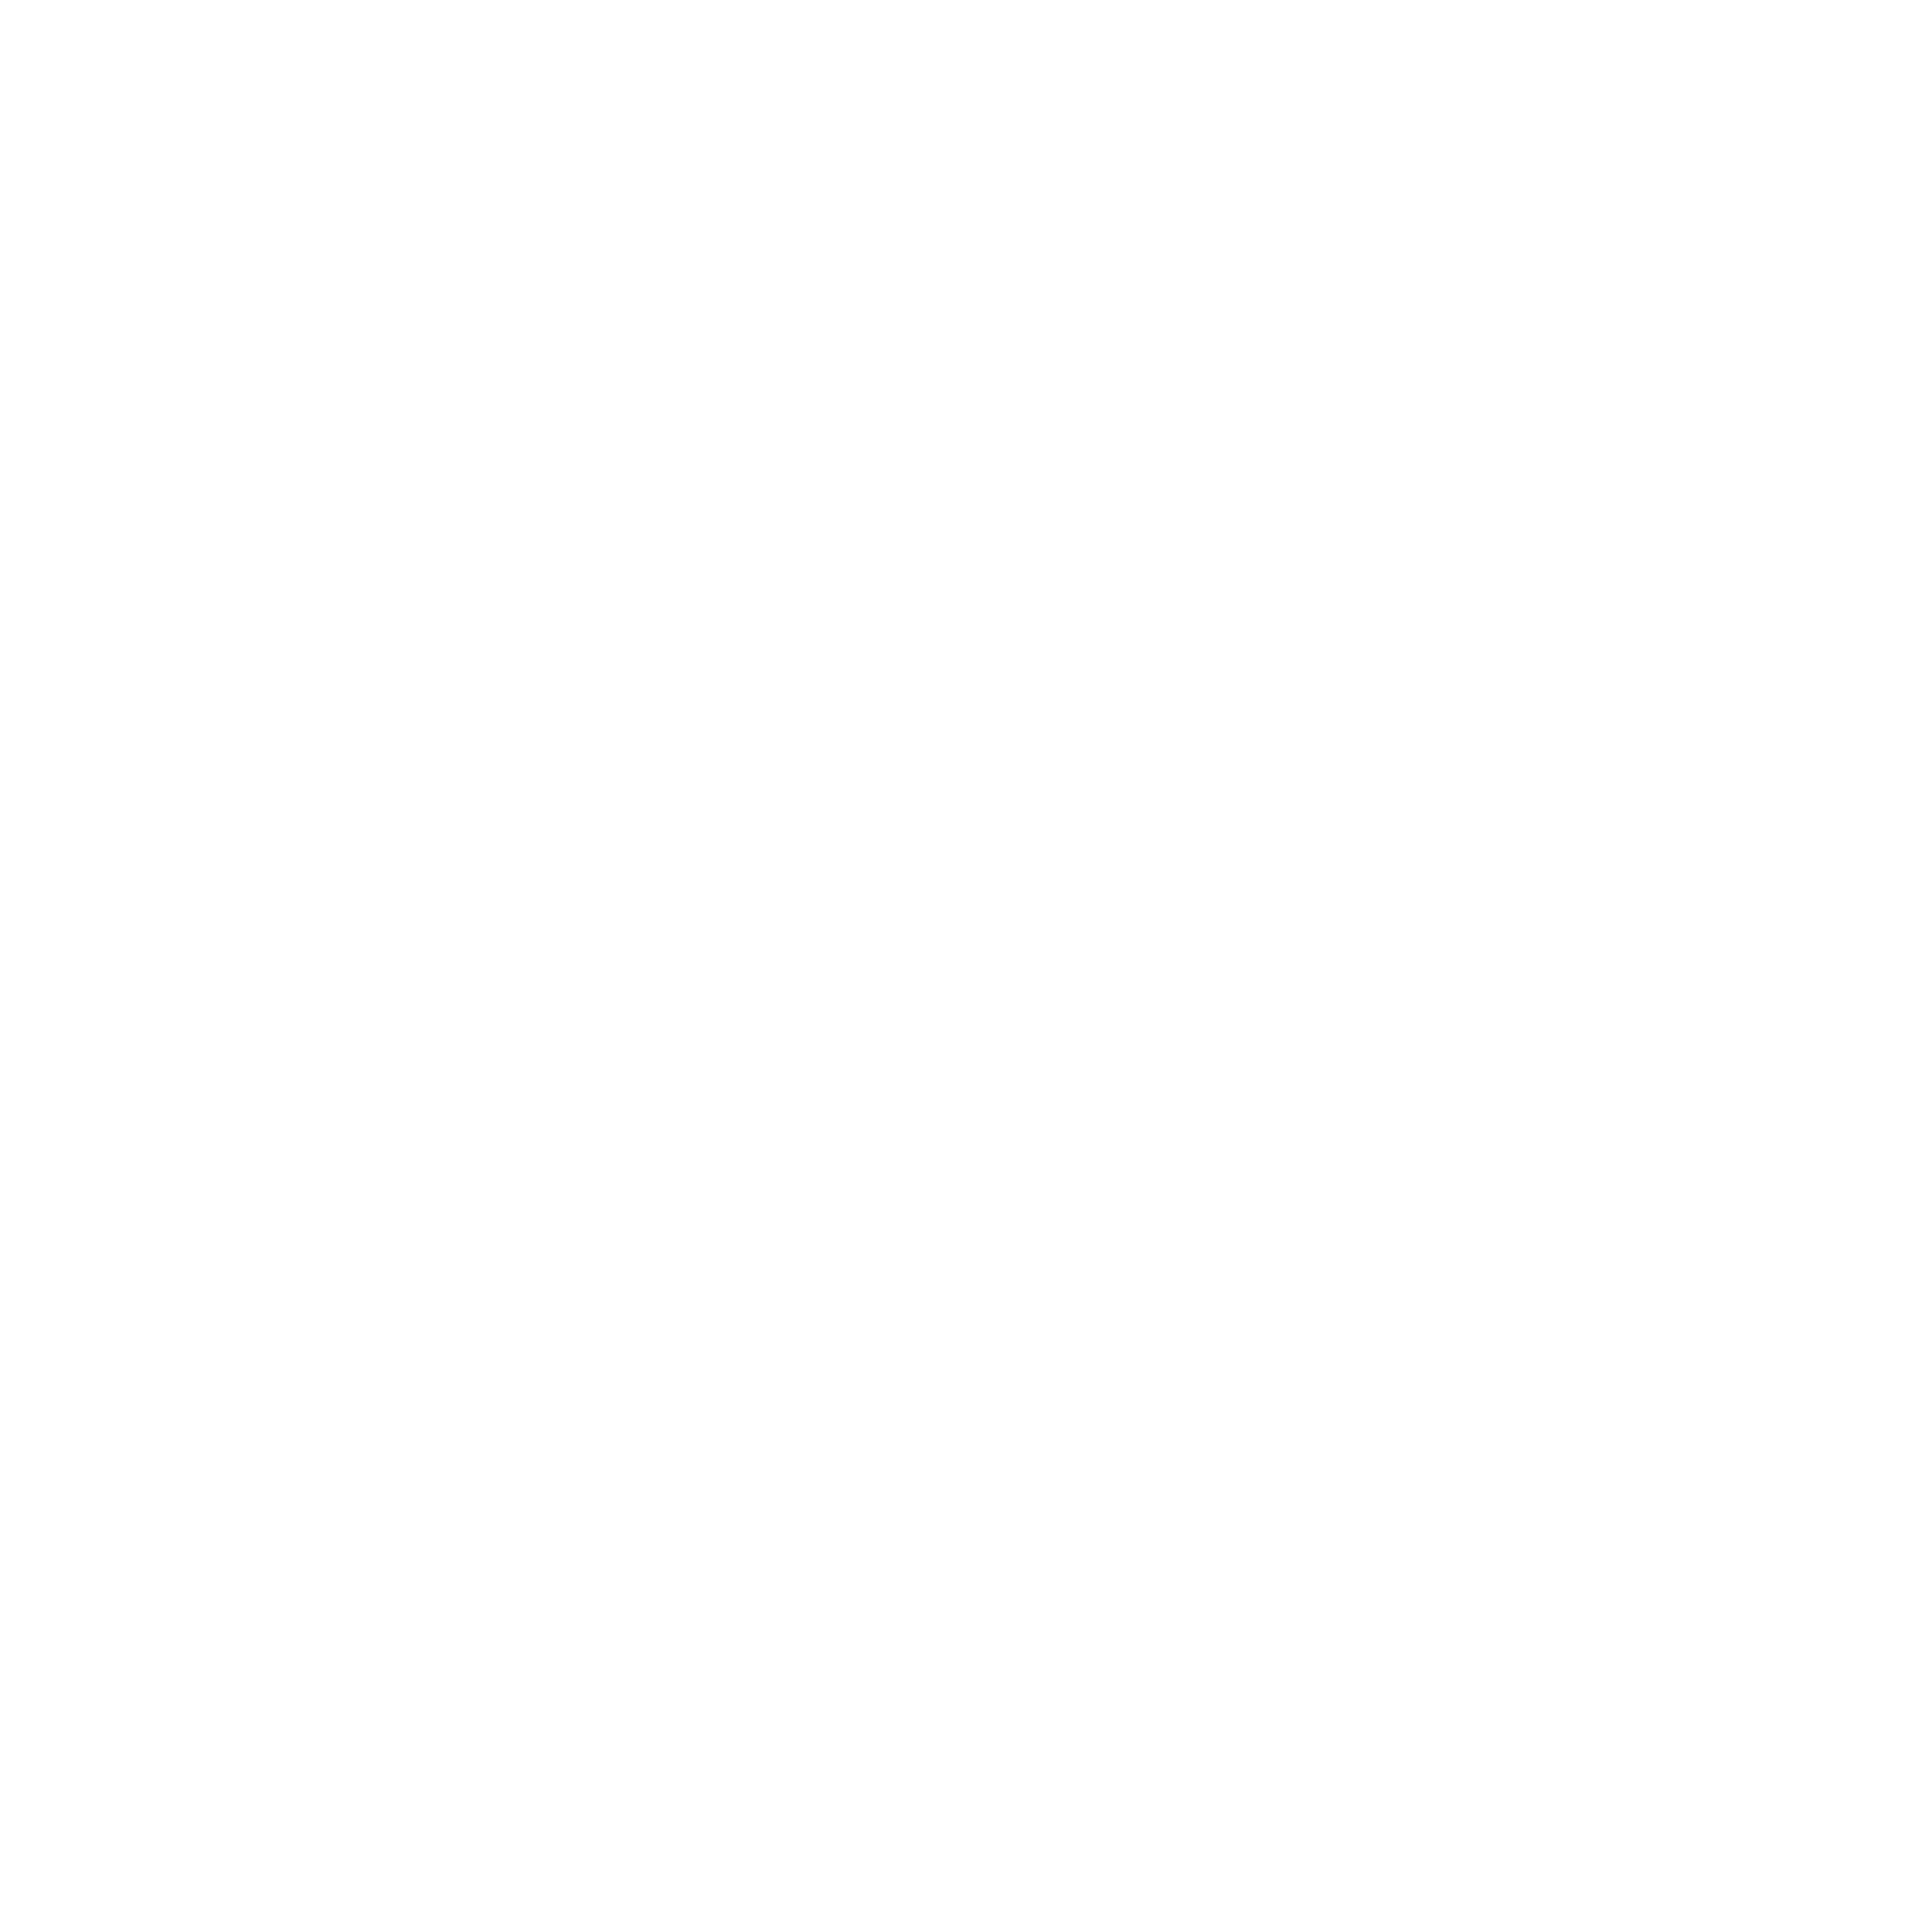 sandiego.png